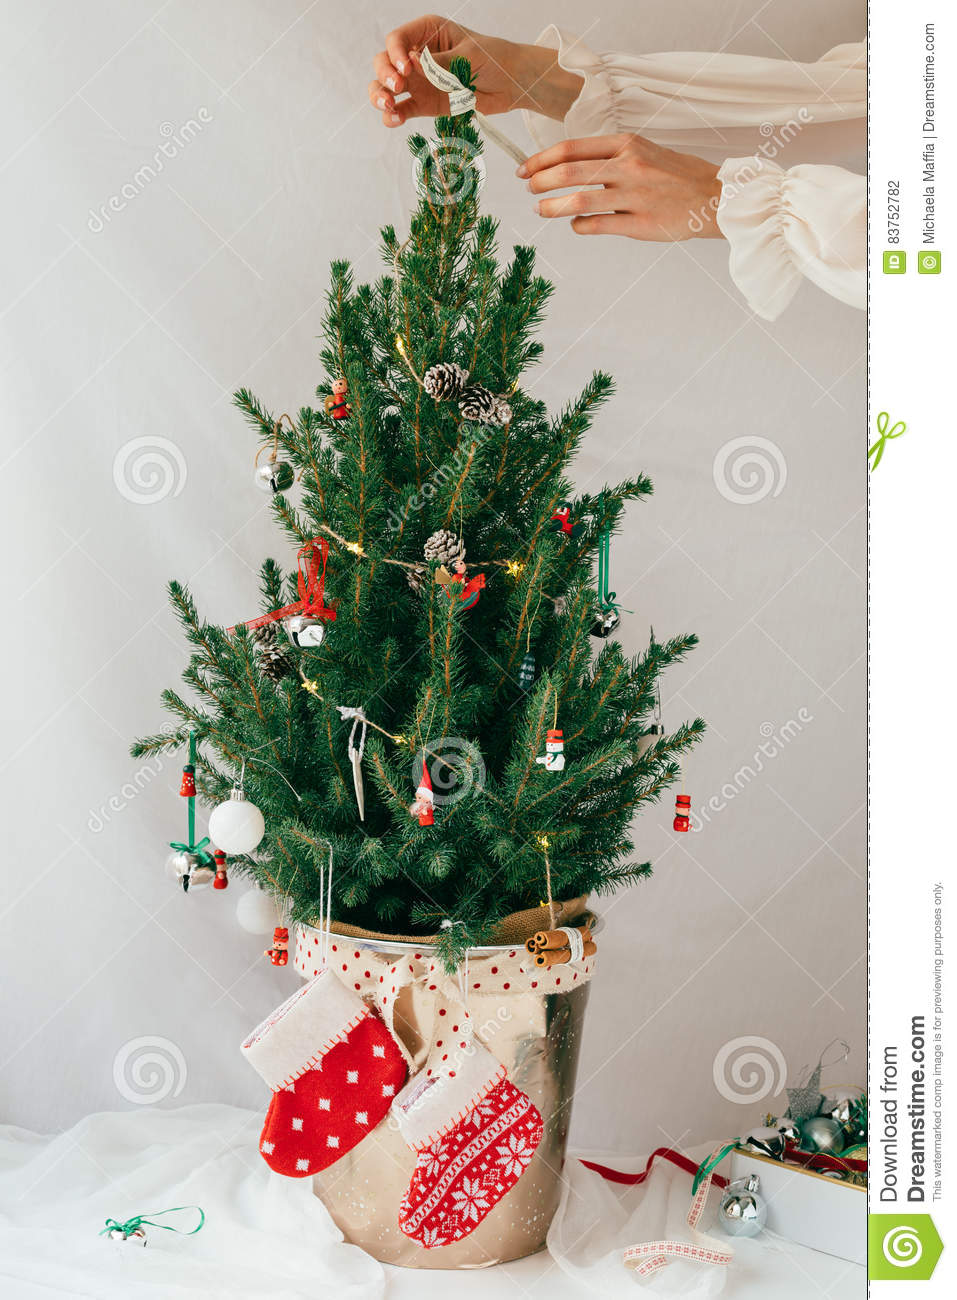 vertical festive scene of a natural fir christmas tree decorated with wooden decorations and baubles with female adding a ribbon to the top